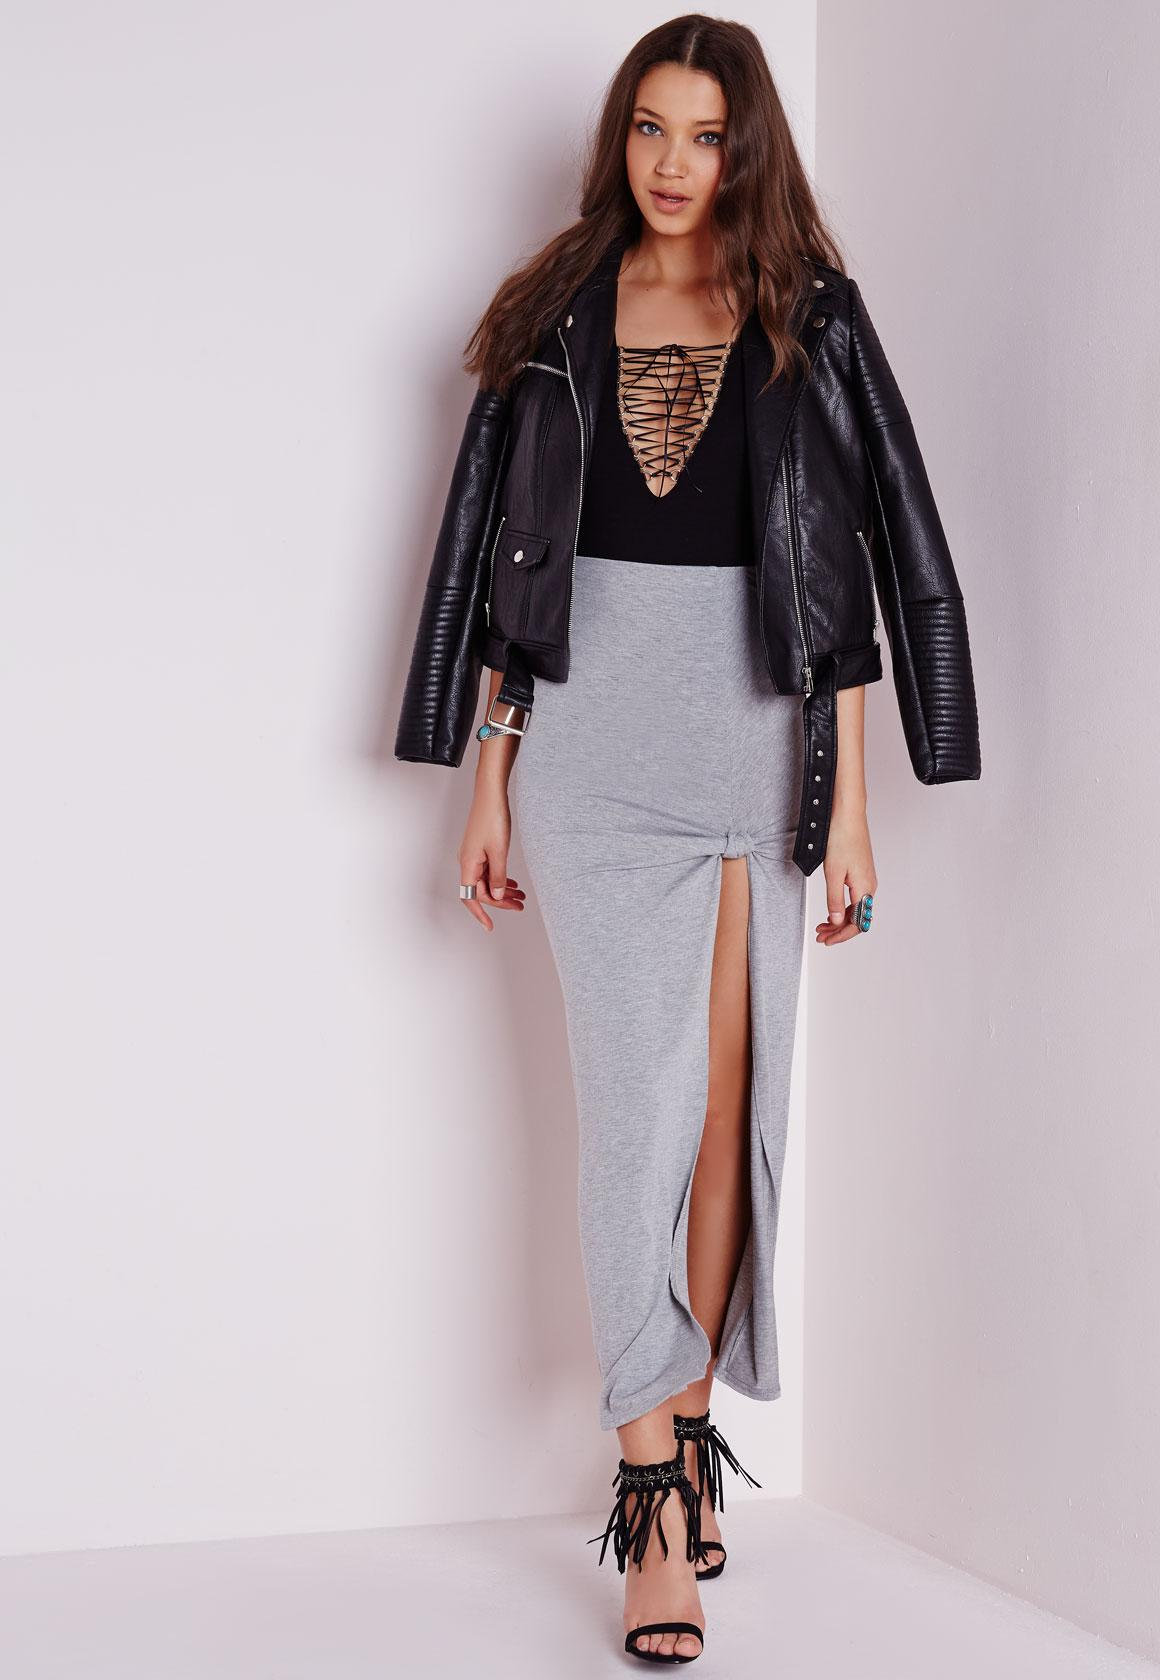 Tie Knot Maxi Skirt Grey - Maxi - Skirts - Missguided